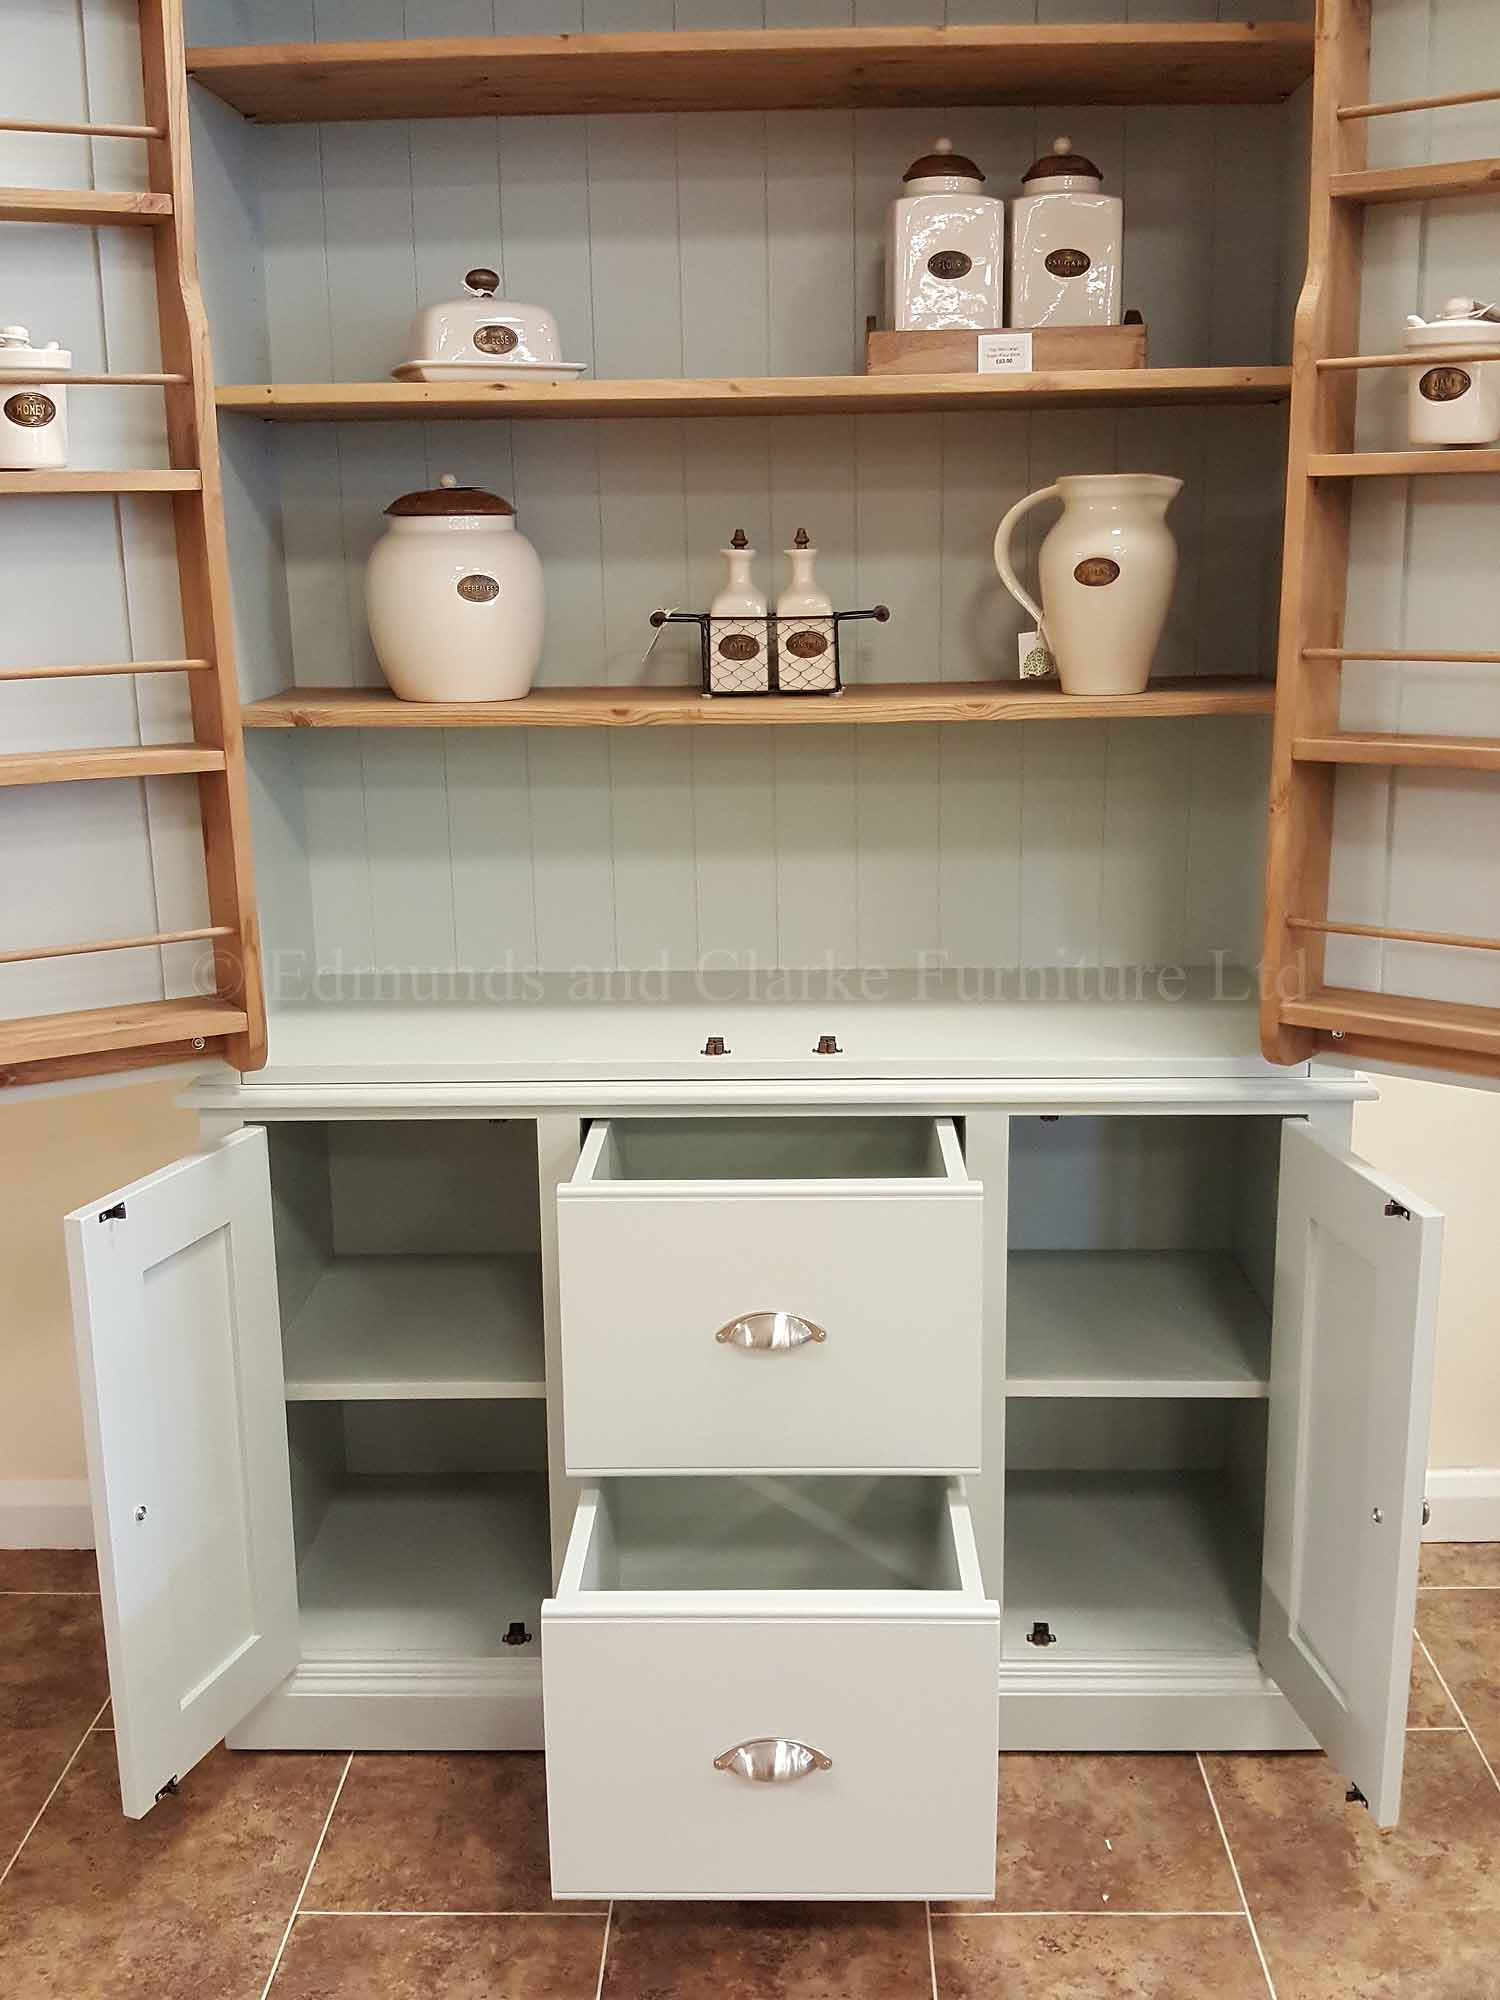 Kitchen larder pantry cupboard made with two large doors above, two central pan drawer and small cupboard below either side of the pan drawers